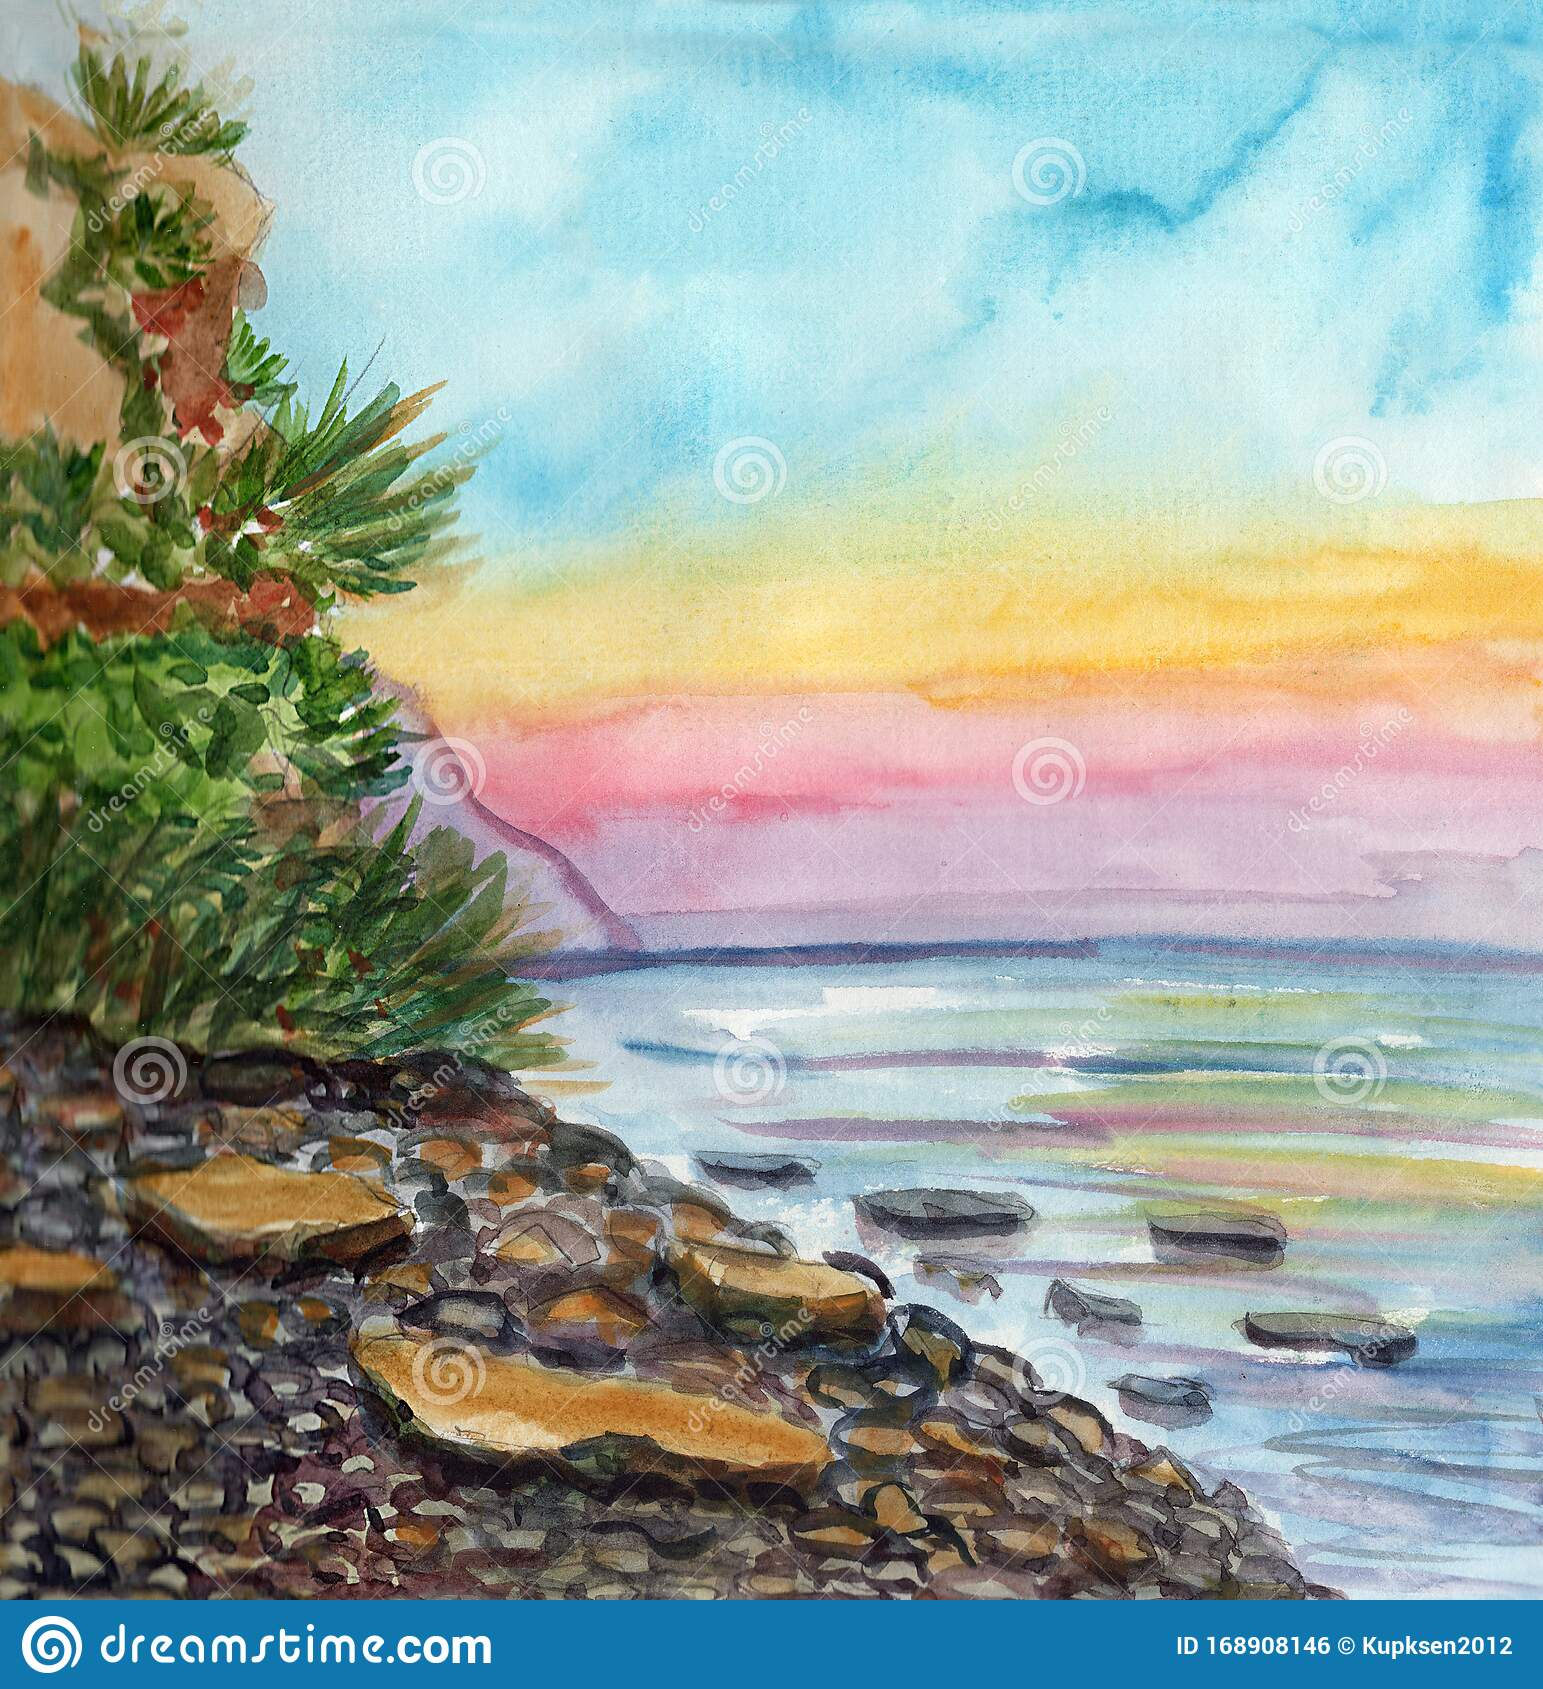 Hand Drawn Seascape Watercolor Painting Landscape With Rocks And Green Plants Sketch Style Summer Drawing Blue Yellow And Pin Stock Illustration Illustration Of Hand Ocean 168908146